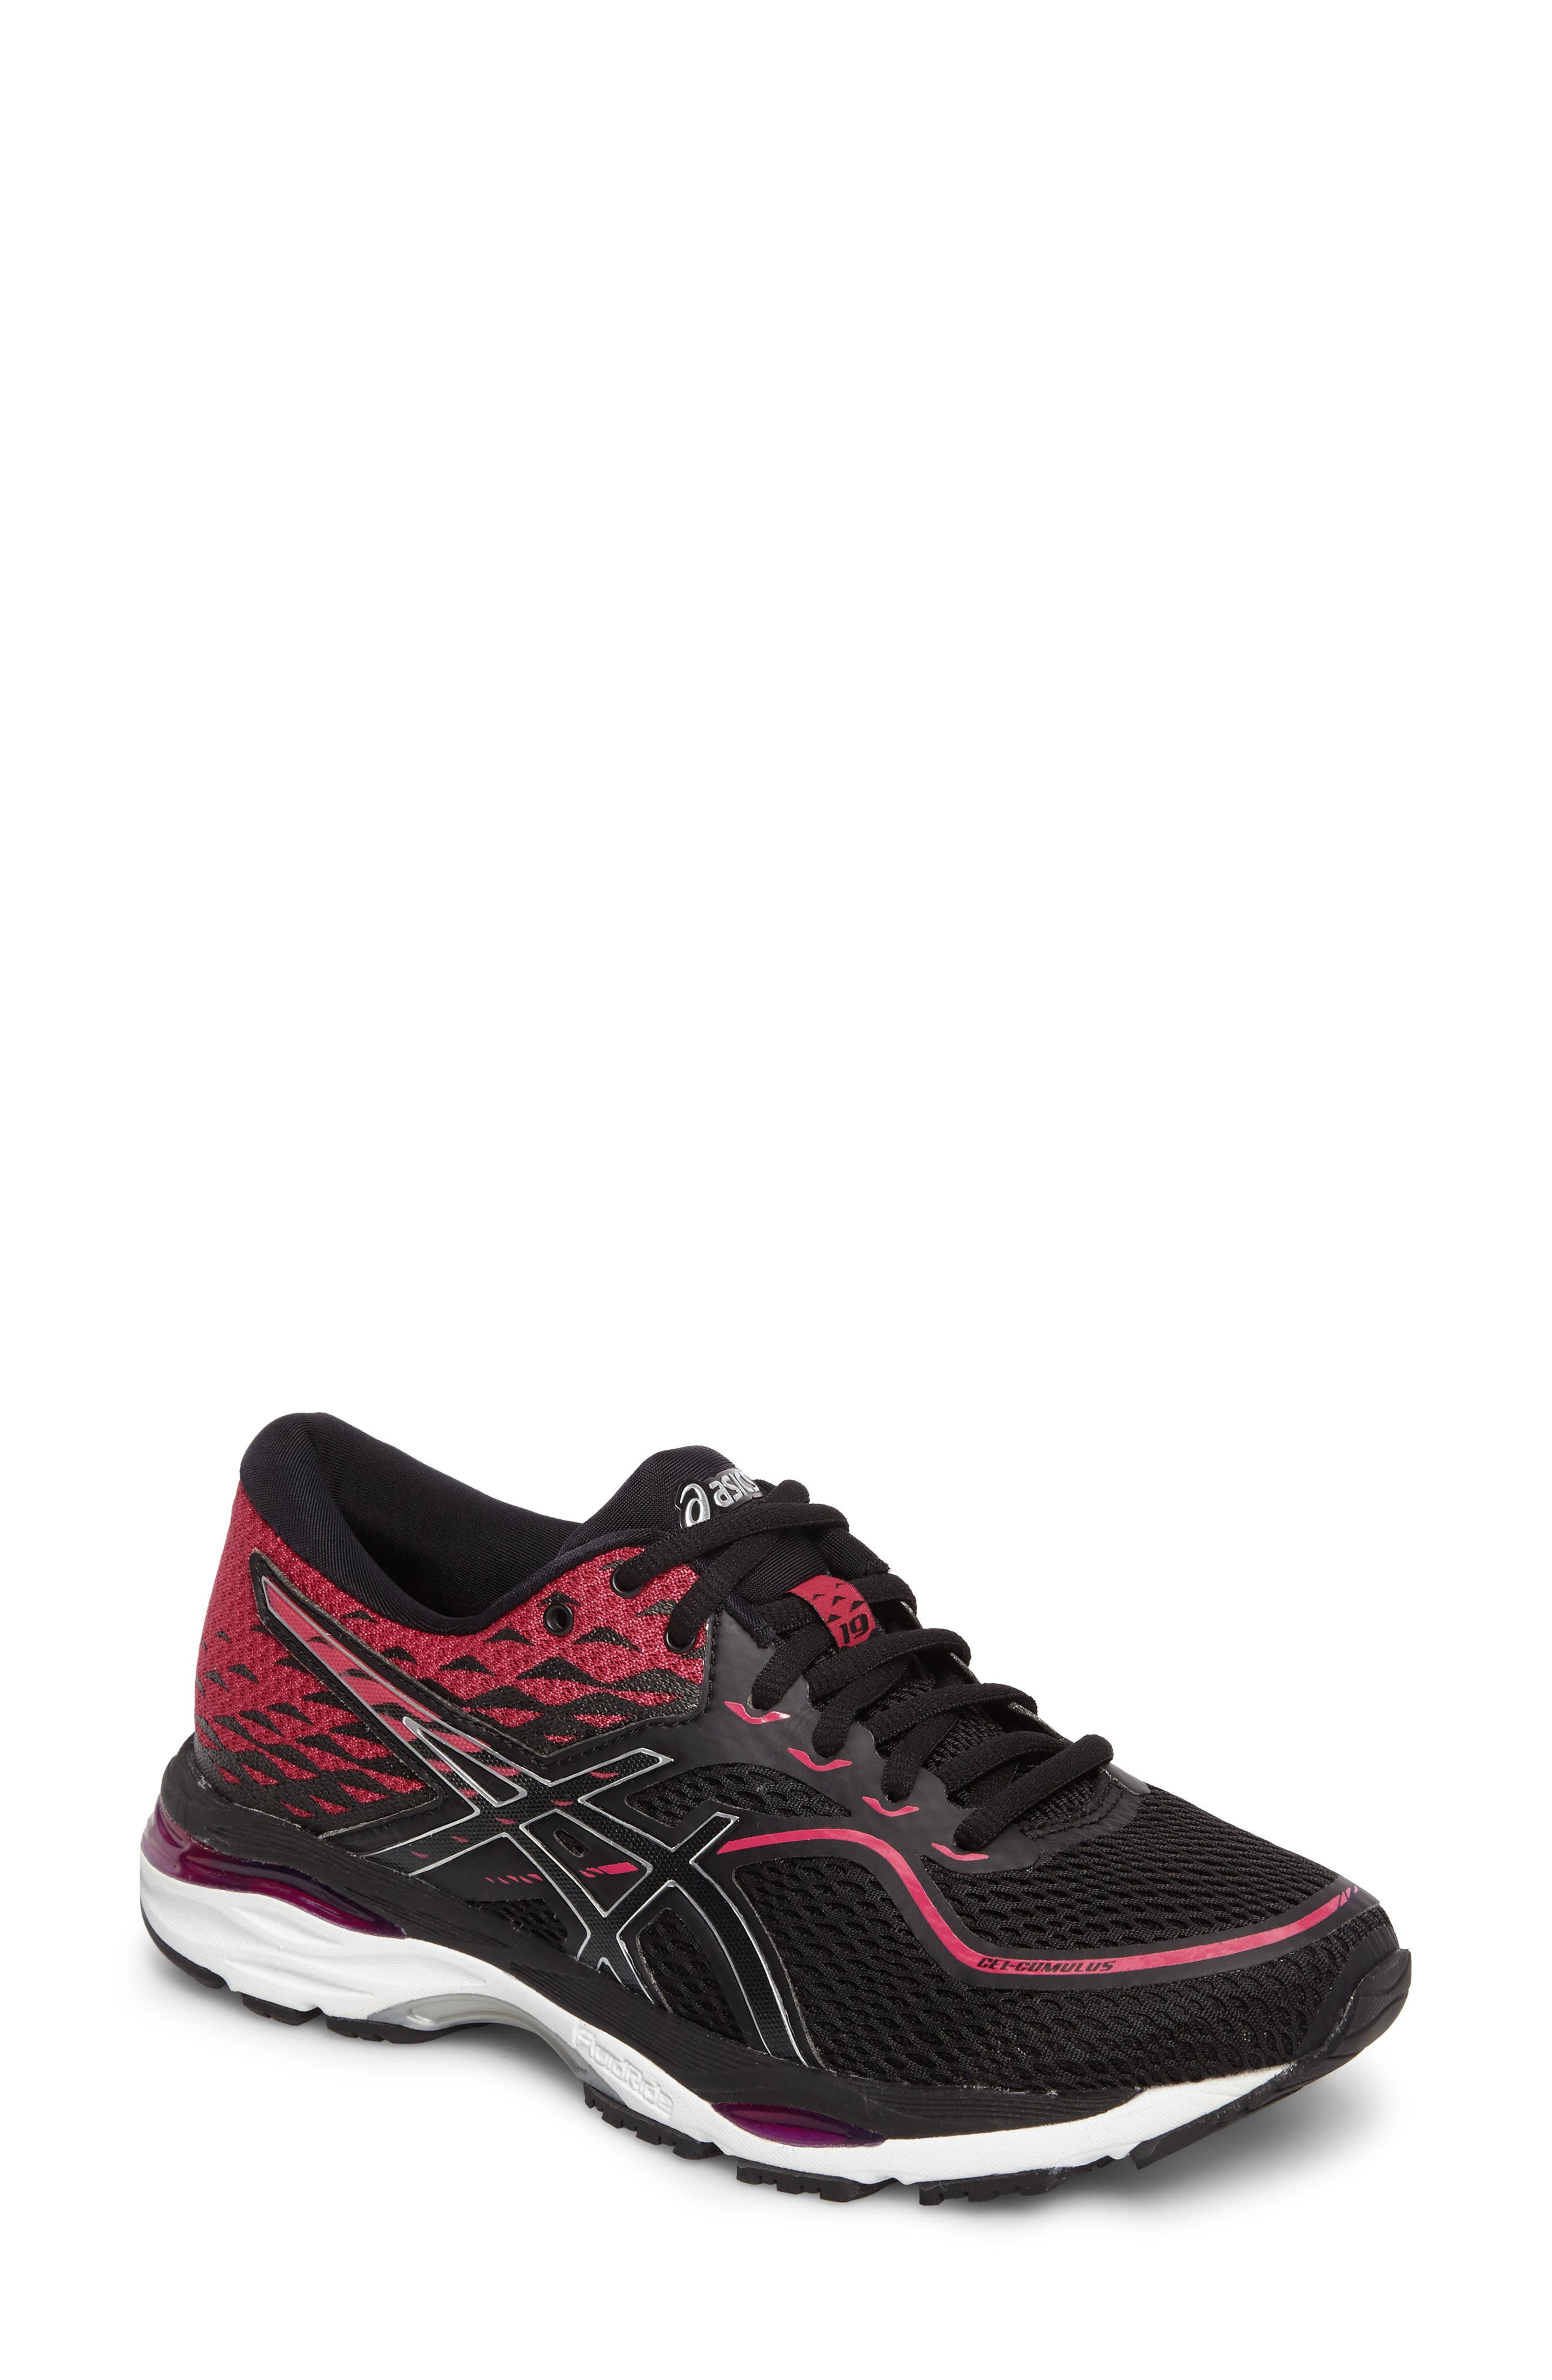 Gel Cumulus 19 2A Running Shoe,                             Main thumbnail 1, color,                             Black/ Silver/ Pink Peacock